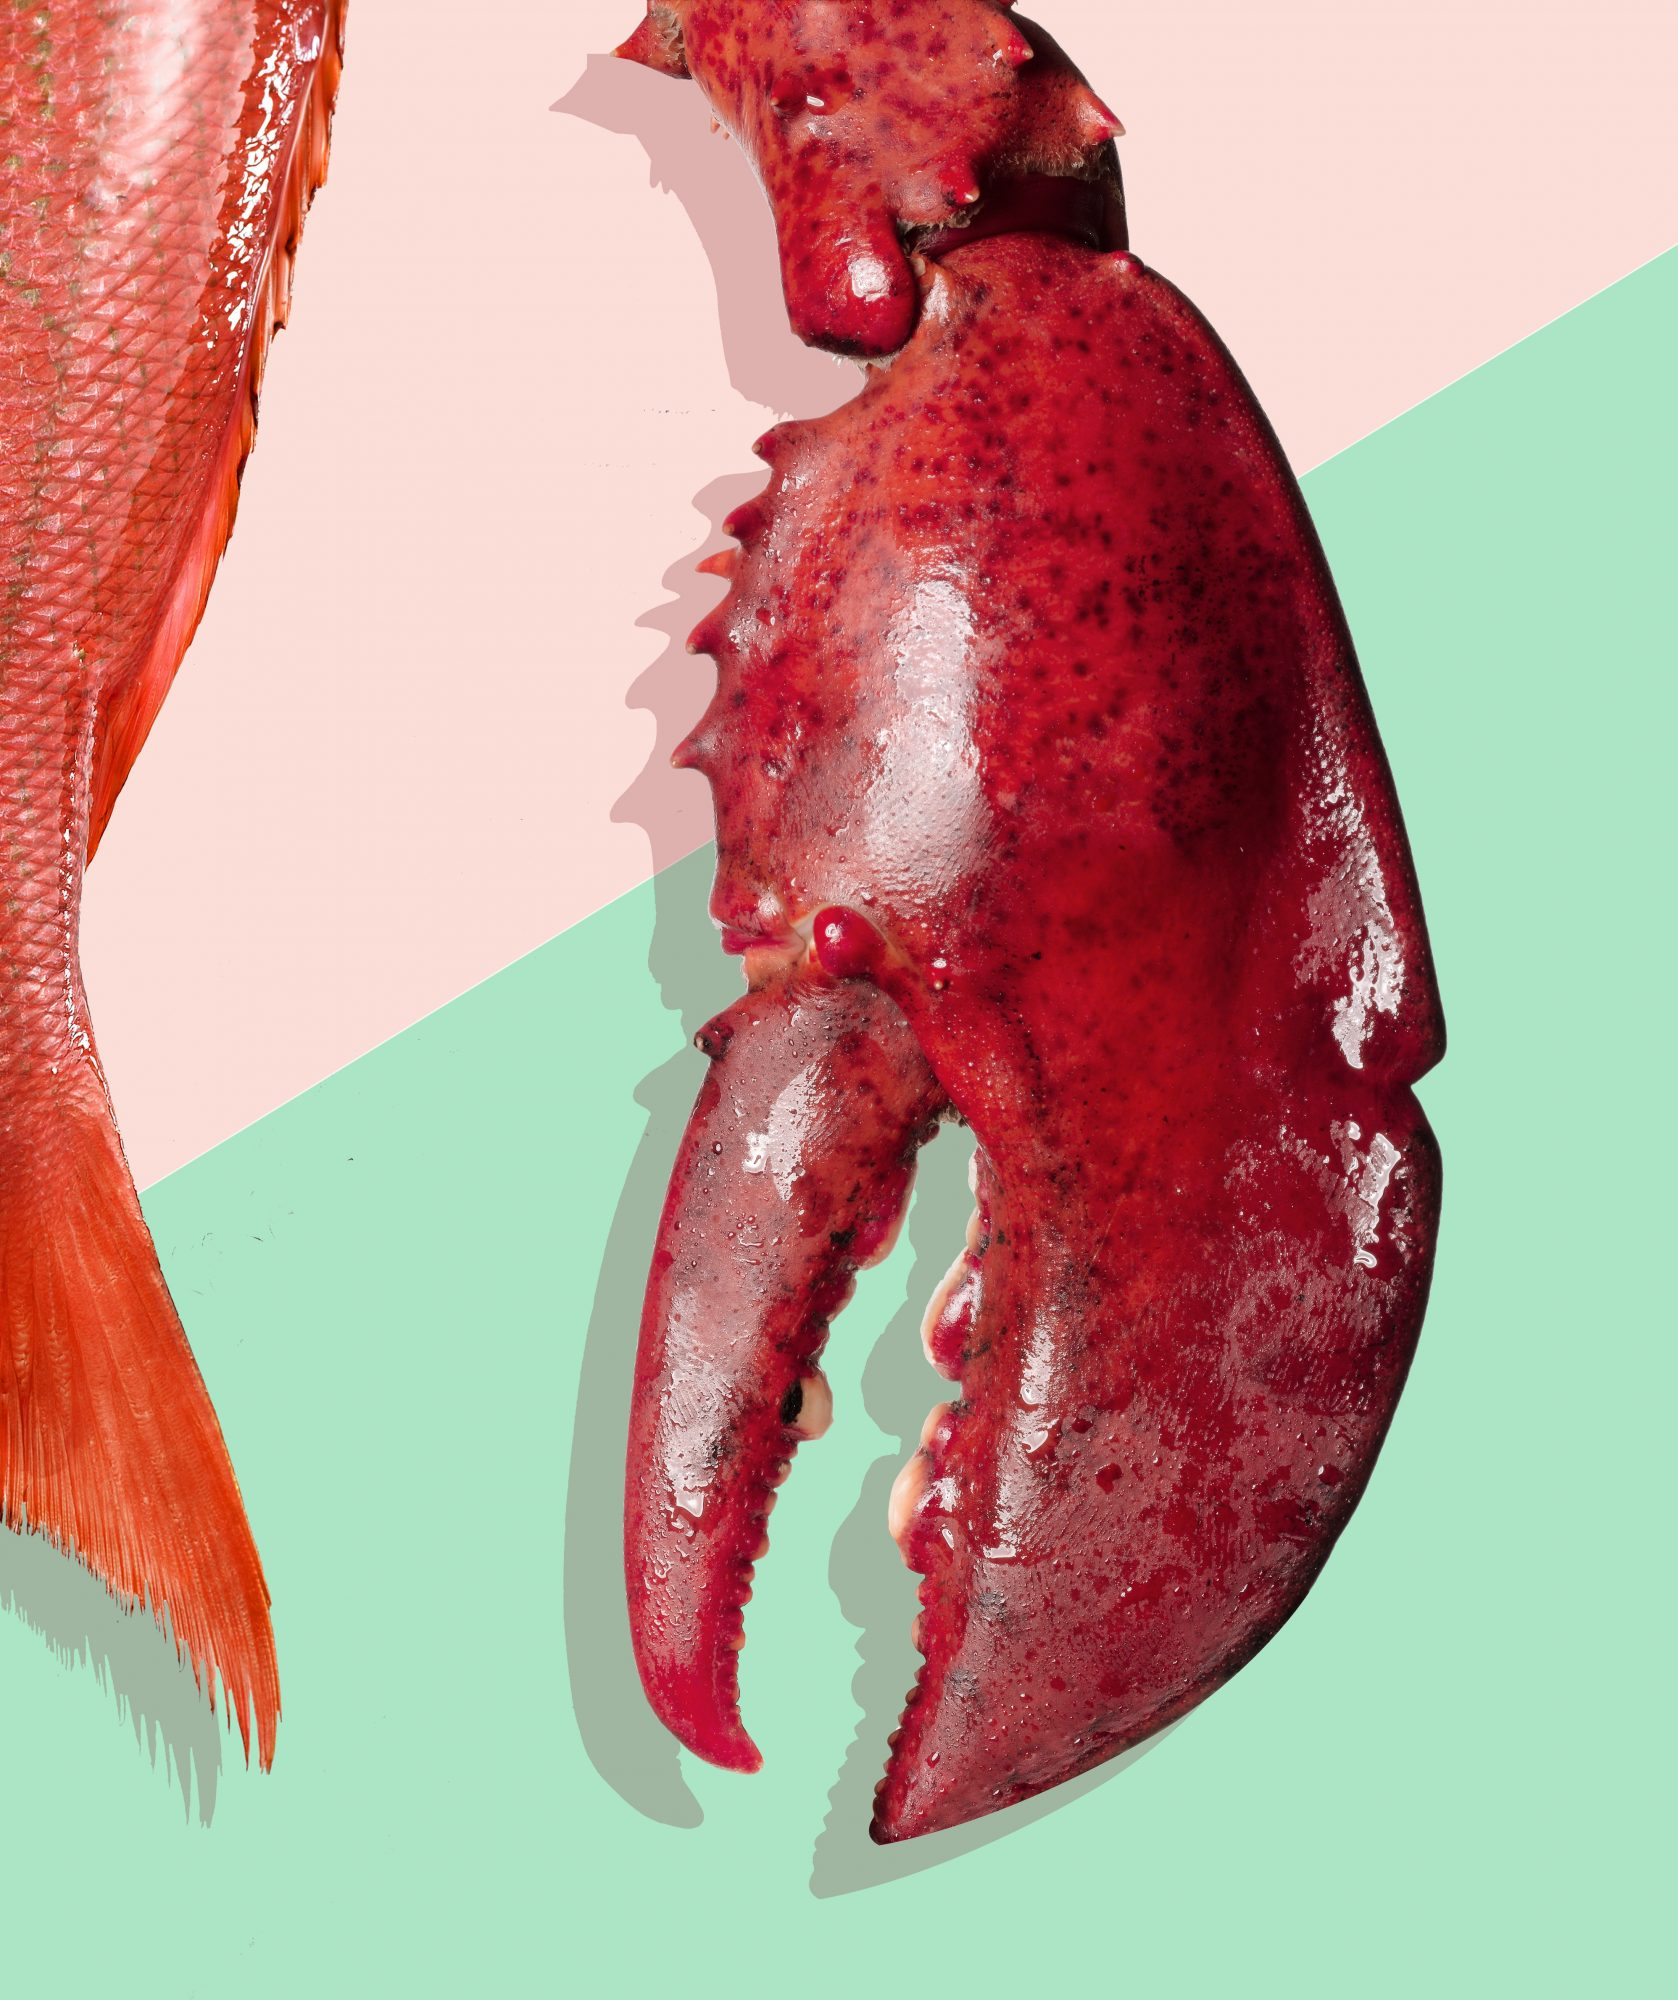 How to Select, Store, and ServeSeafood Safely, According to an Expert